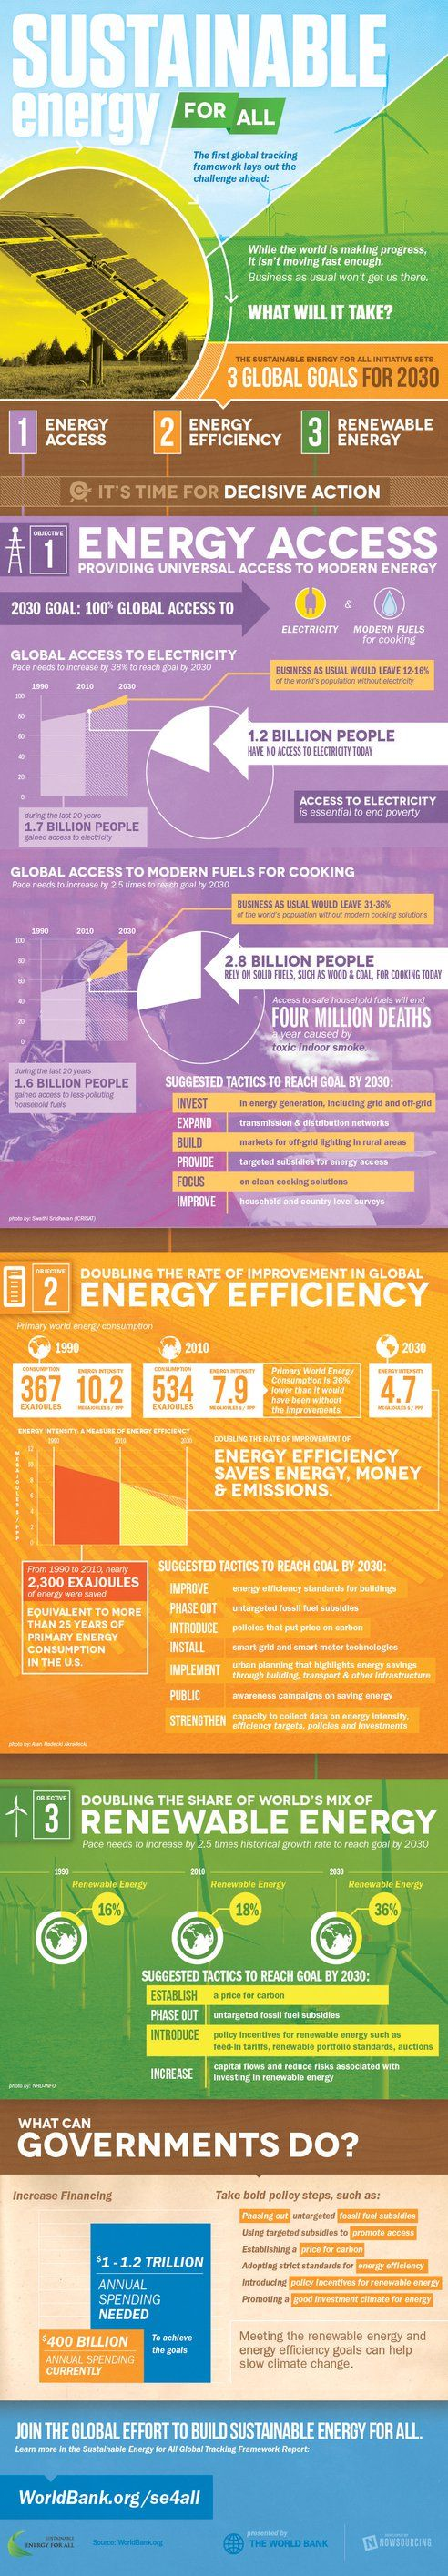 What's needed to get sustainable energy for all (World Bank infographic) : TreeHugger